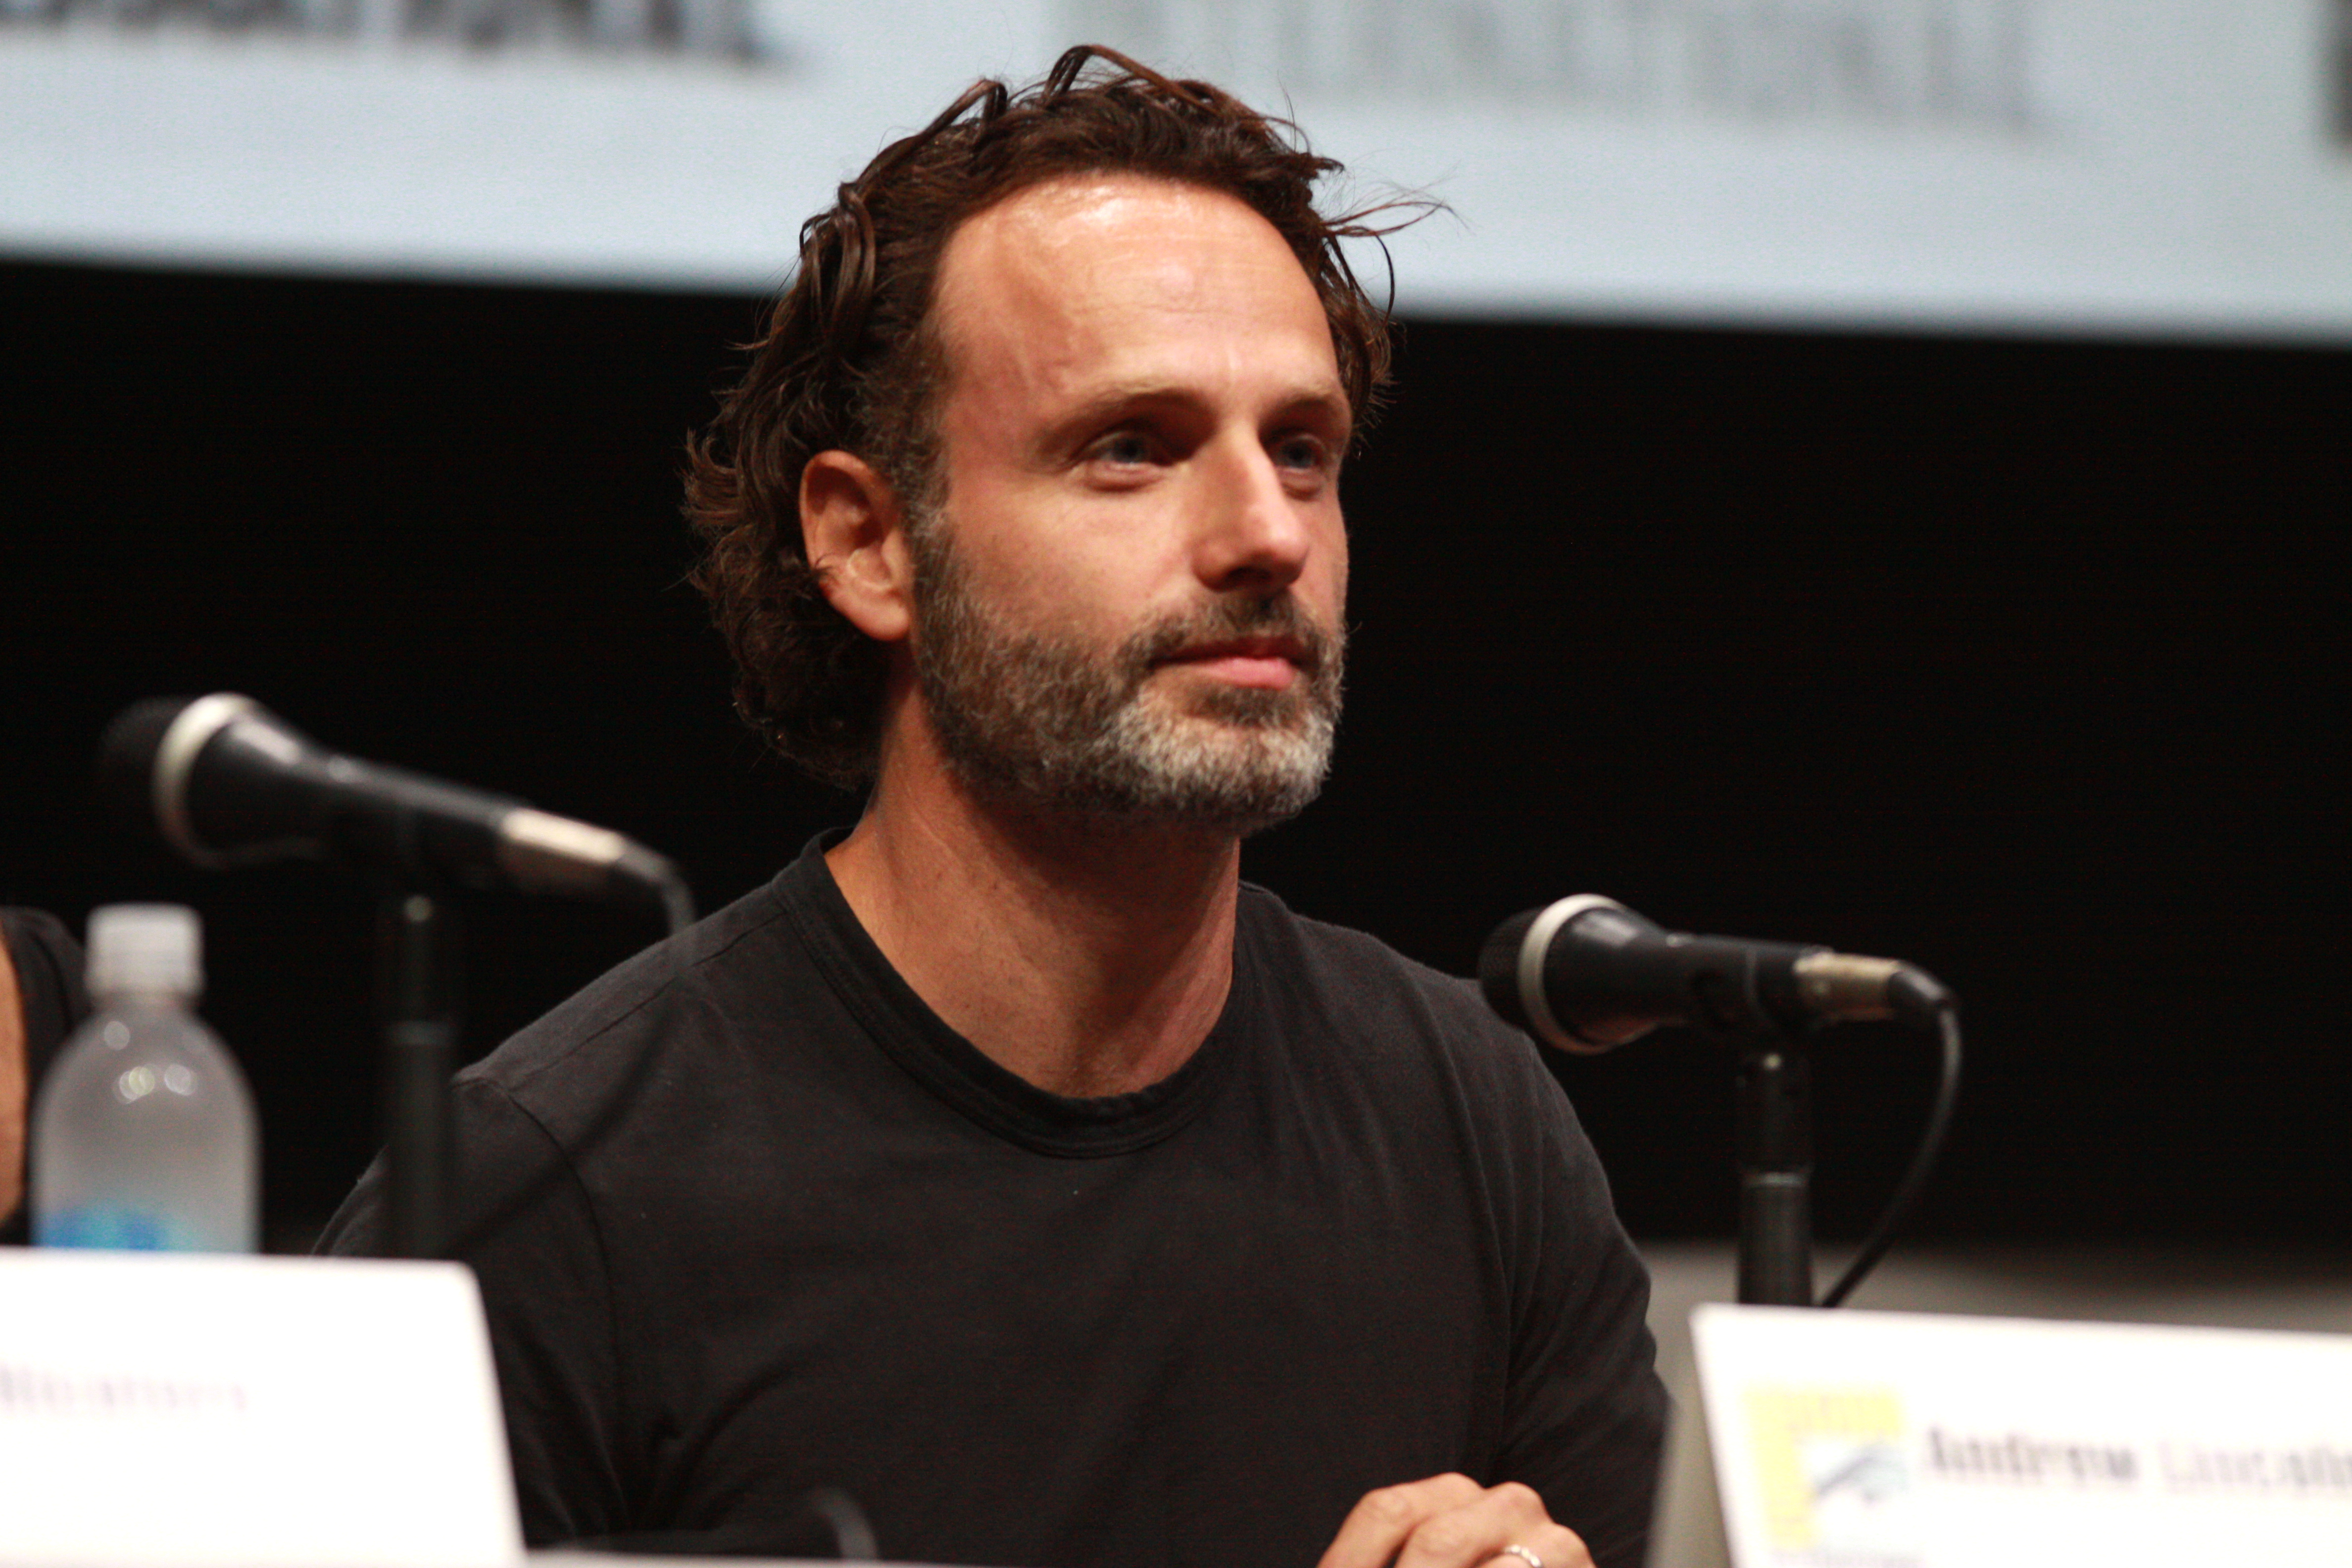 andrew lincoln photoshootandrew lincoln love actually, andrew lincoln height, andrew lincoln facebook, andrew lincoln net worth, andrew lincoln photoshoot, andrew lincoln gif hunt, andrew lincoln keira knightley, andrew lincoln beard, andrew lincoln vk, andrew lincoln and chandler riggs, andrew lincoln wiki, andrew lincoln with wife, andrew lincoln кинопоиск, andrew lincoln love actually gif, andrew lincoln natal chart, andrew lincoln gallery, andrew lincoln voice, andrew lincoln inst, andrew lincoln tumblr gif, andrew lincoln college